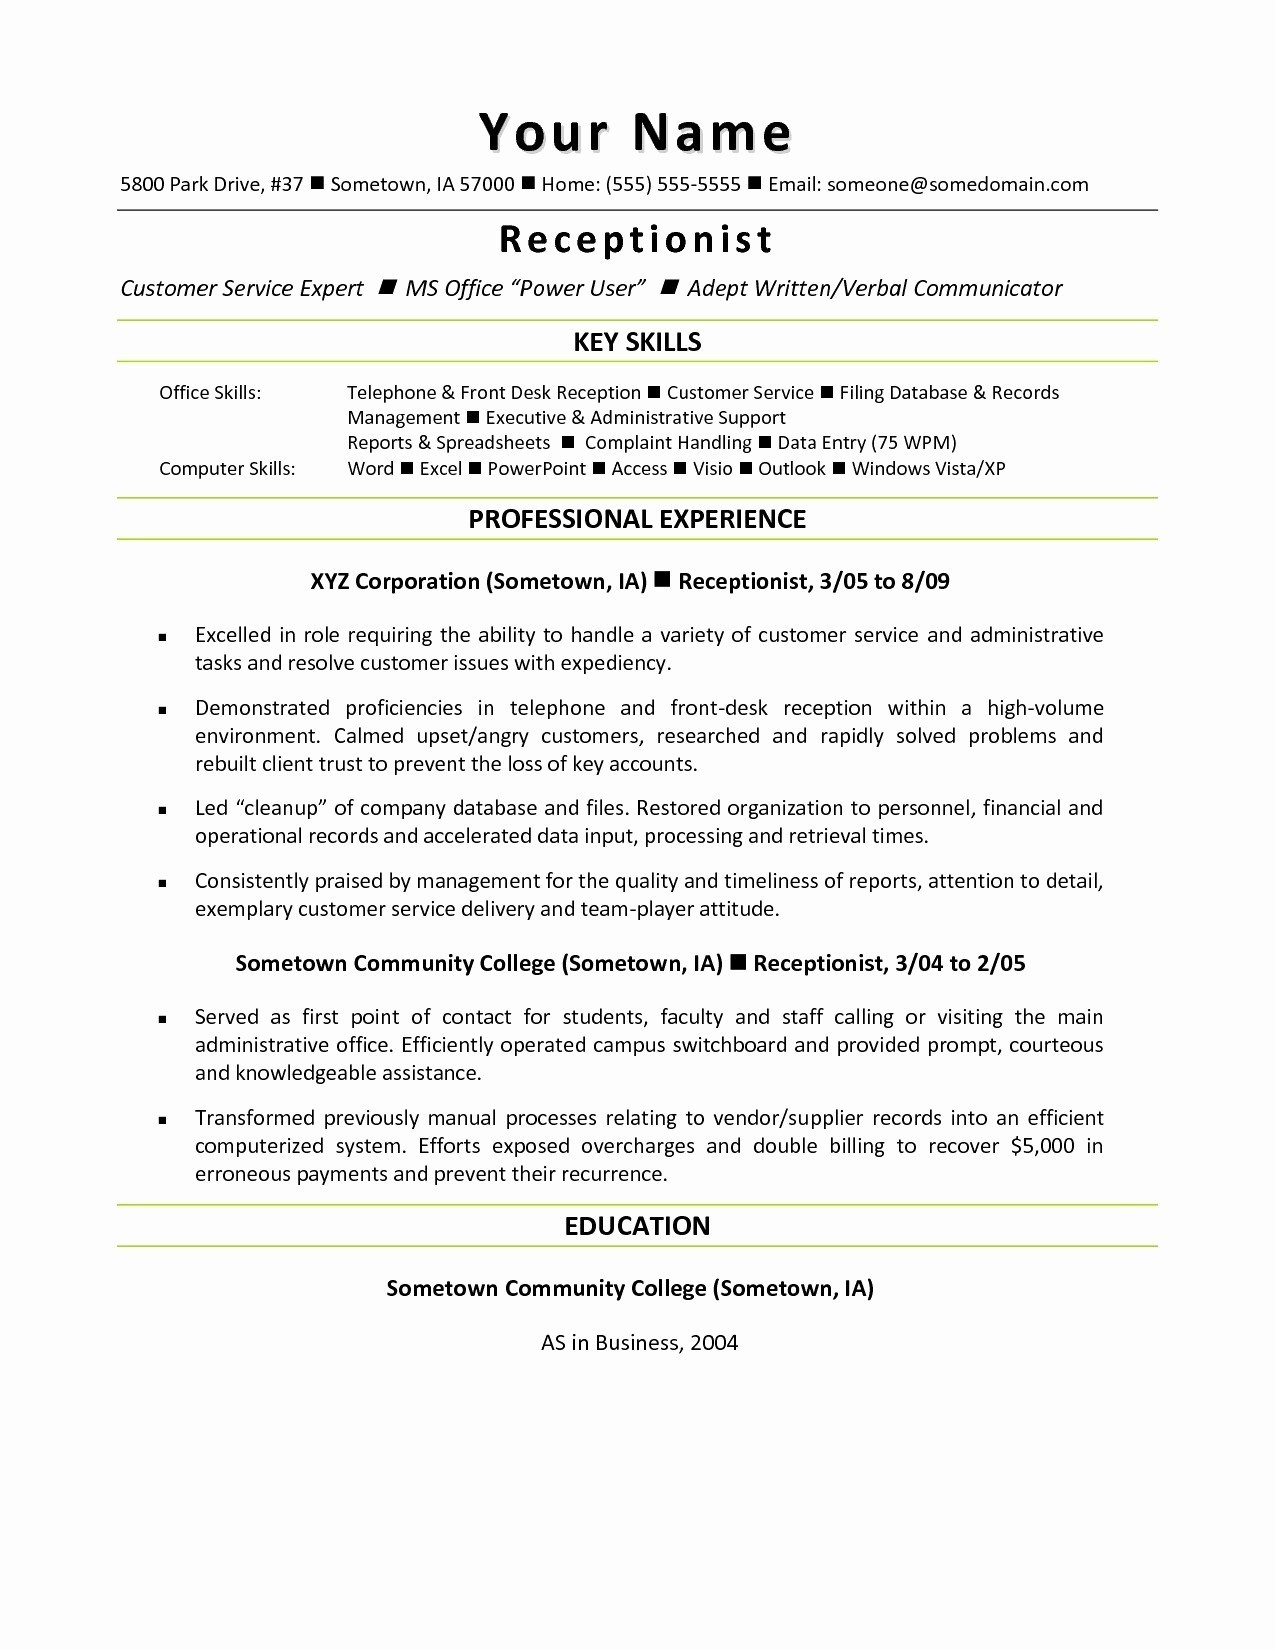 core competencies resume example-Core petencies Resume Beautiful Elegant Good Nursing Resume Elegant Nurse Resume 0d Wallpapers 42 25 17-f